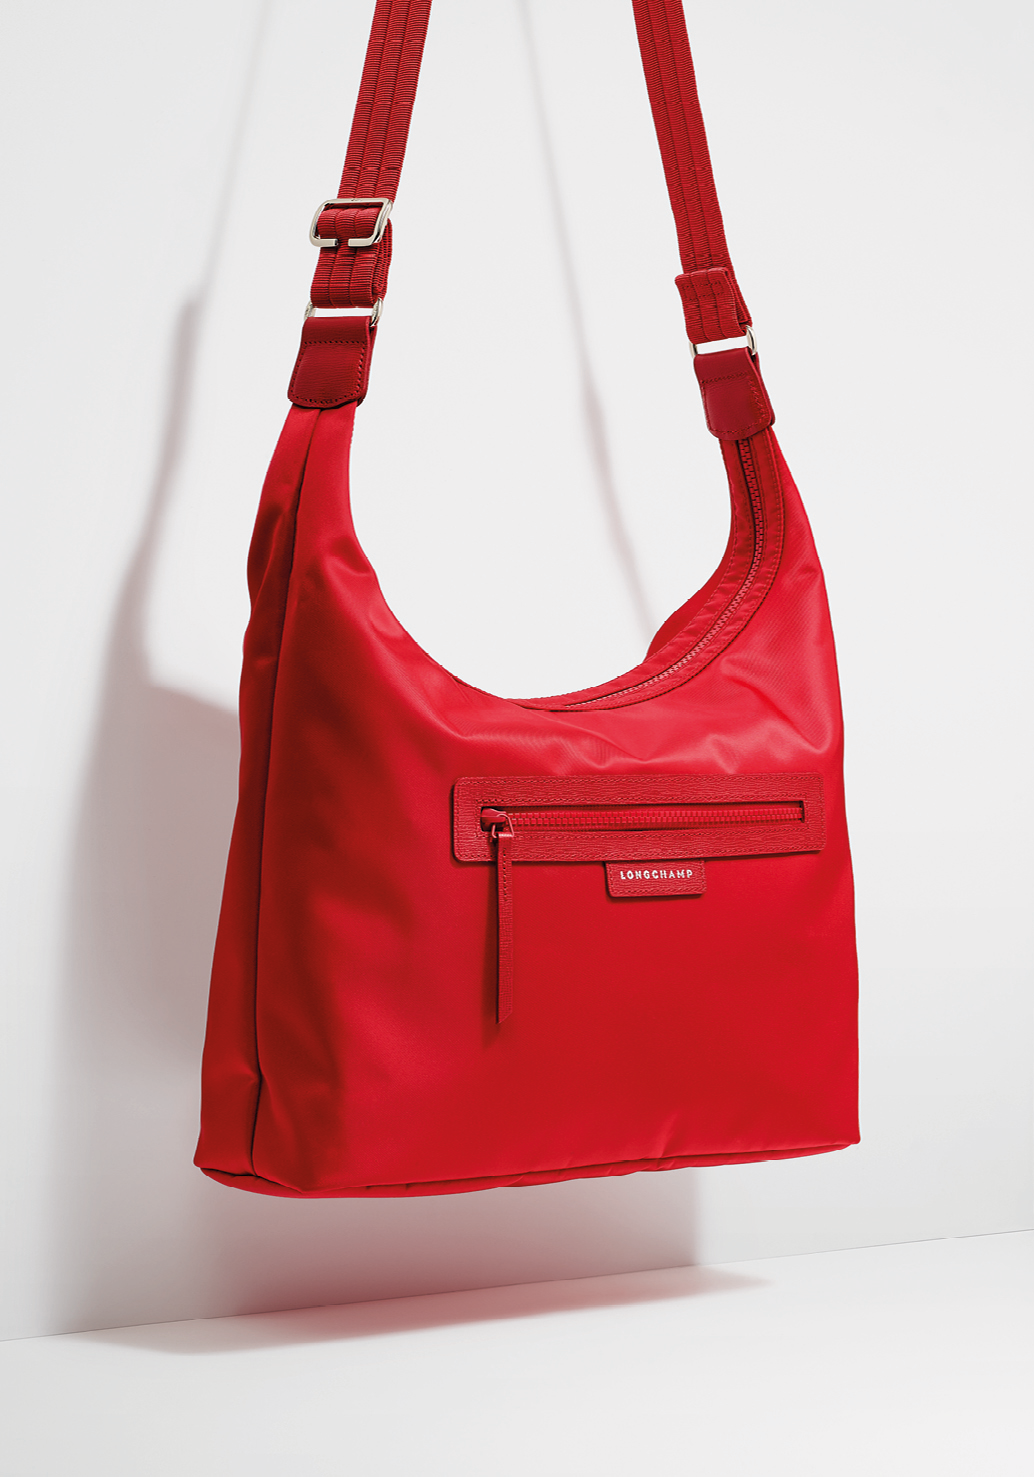 how to clean longchamp bag